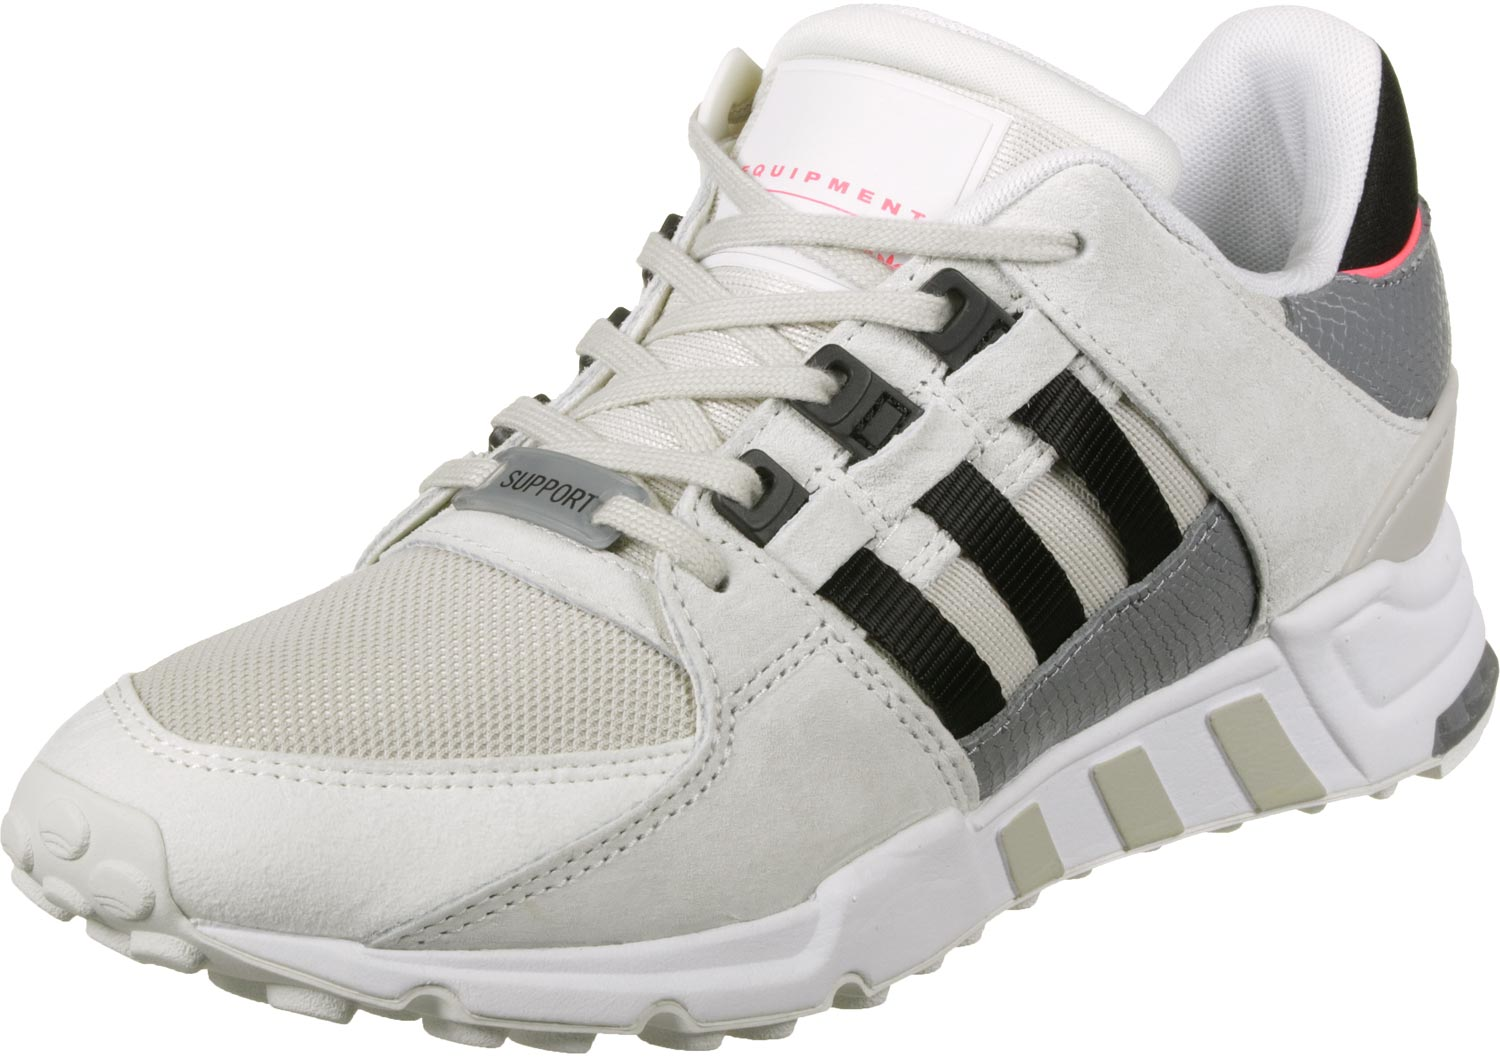 adidas EQT Support RF W - Sneakers Low